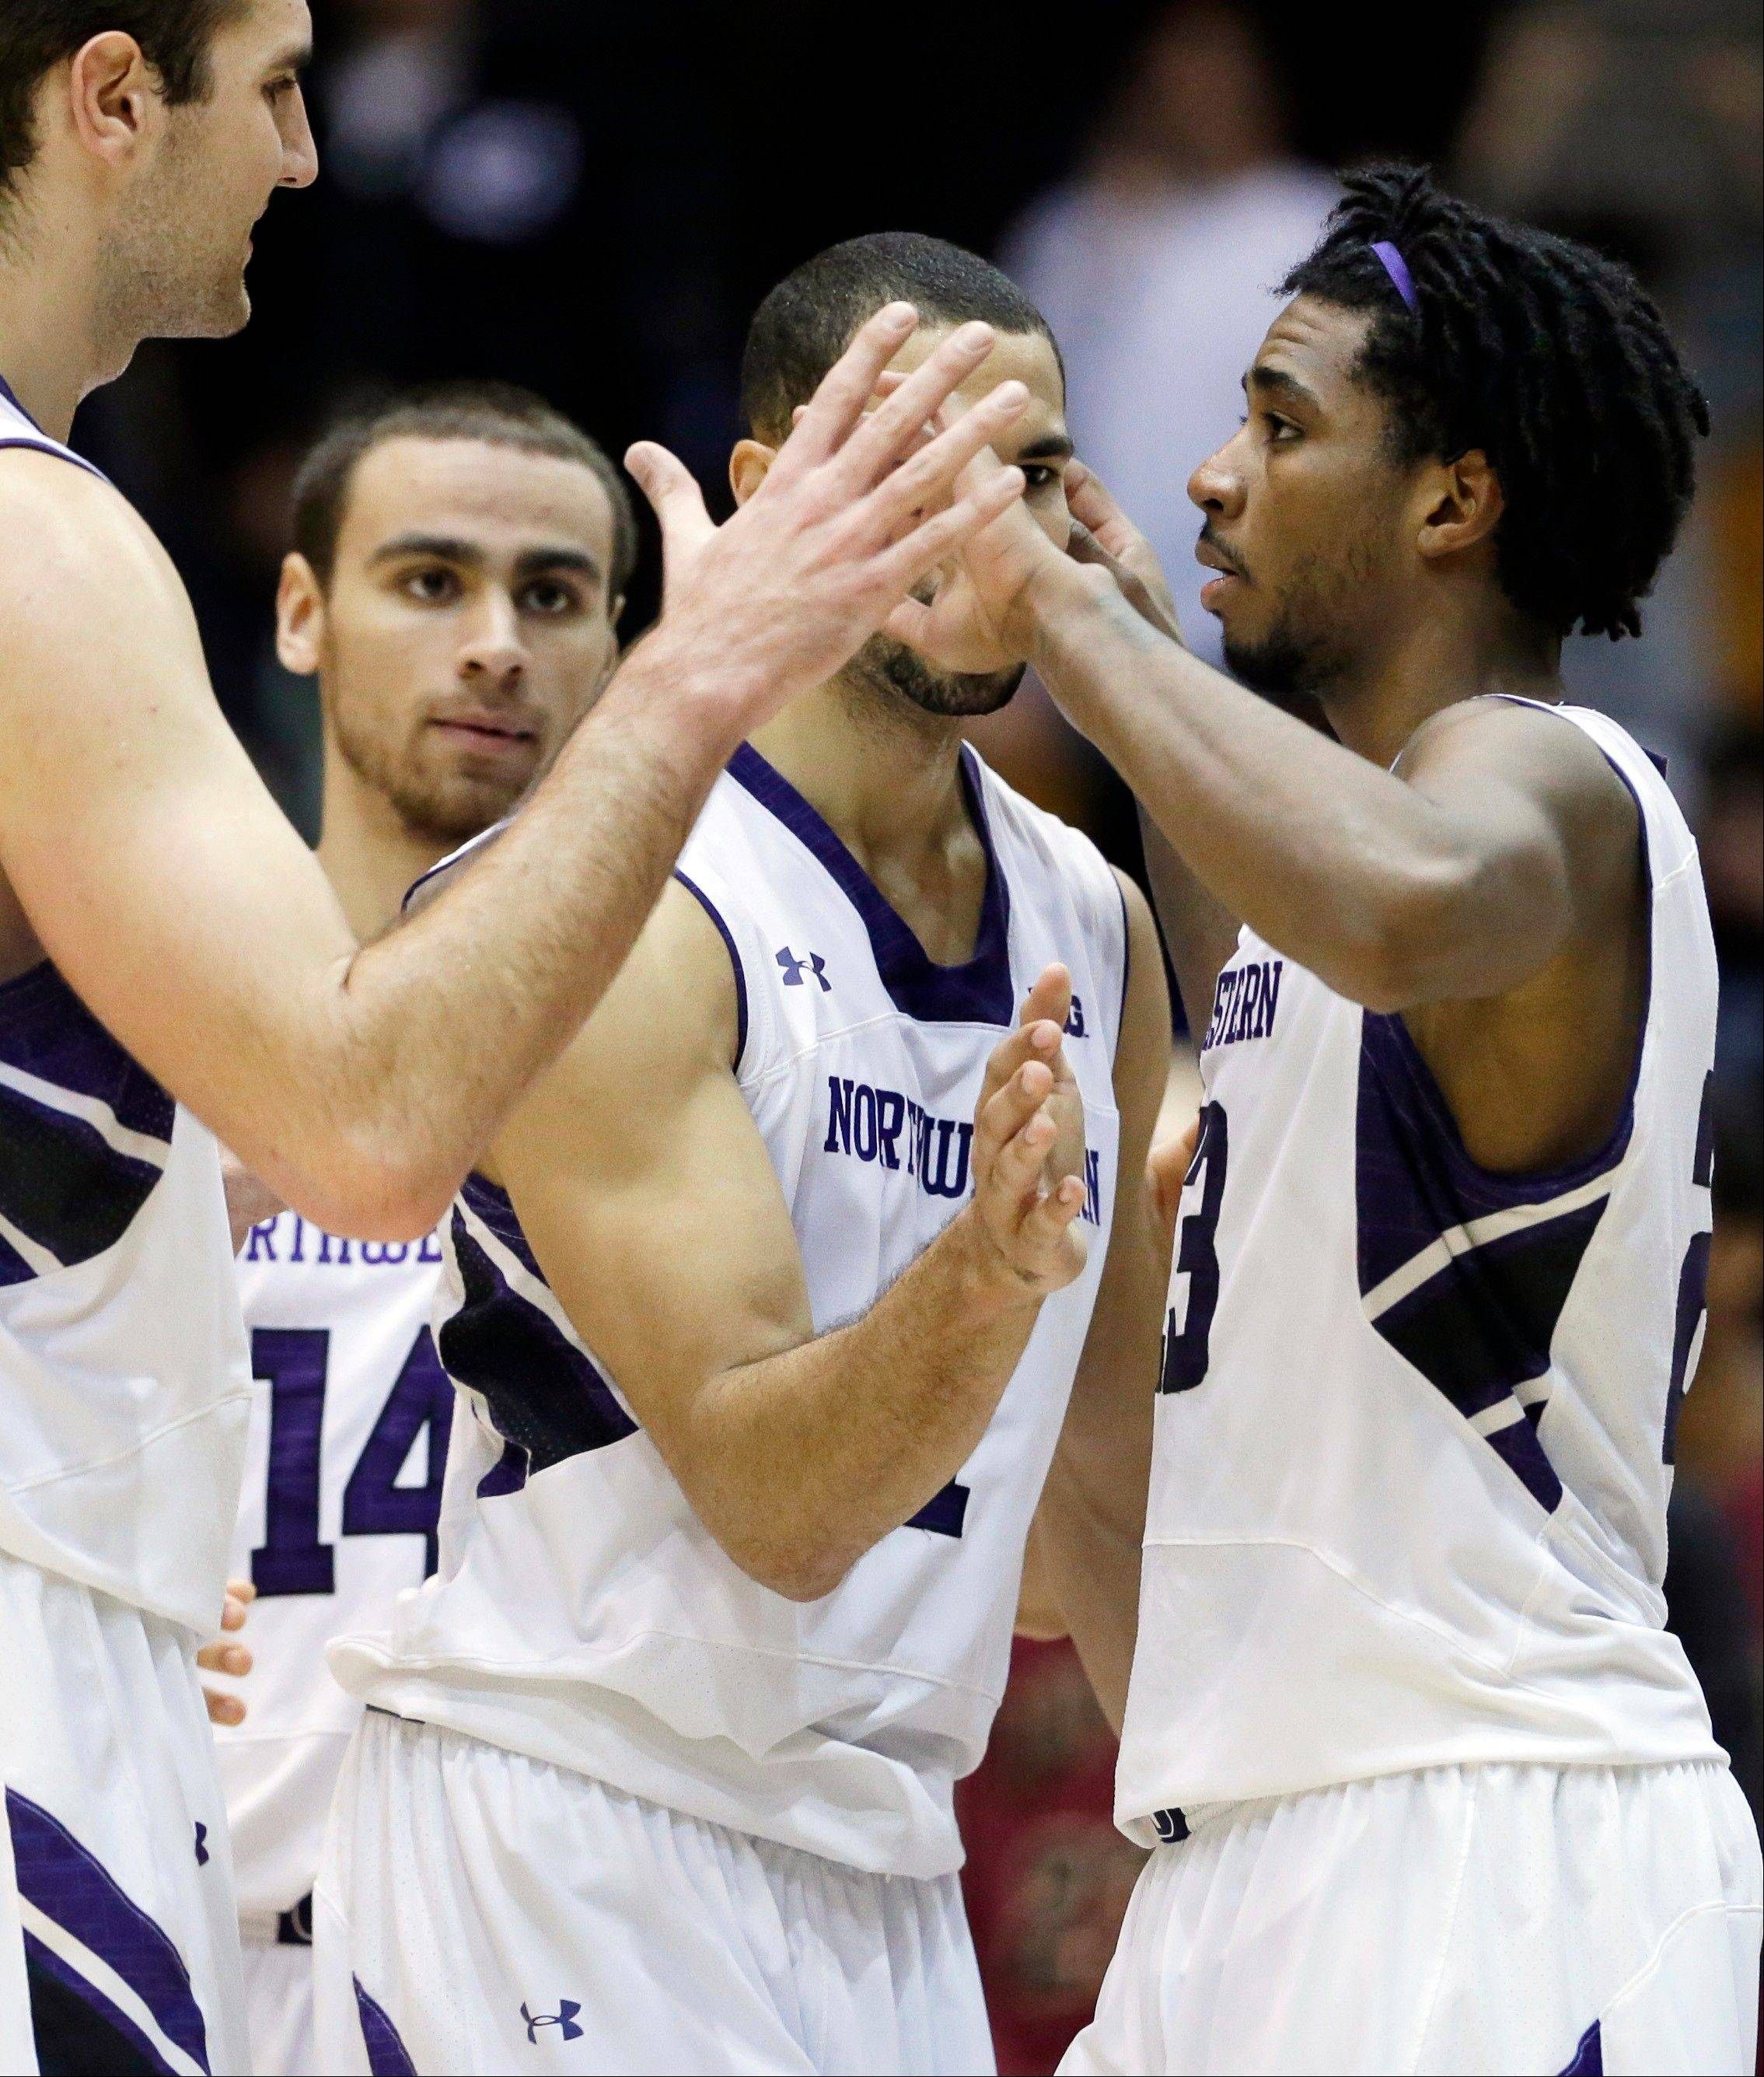 Northwestern guard JerShon Cobb, right, celebrates with teammates after Northwestern defeated IUPUI 63-61 on Friday in Evanston.